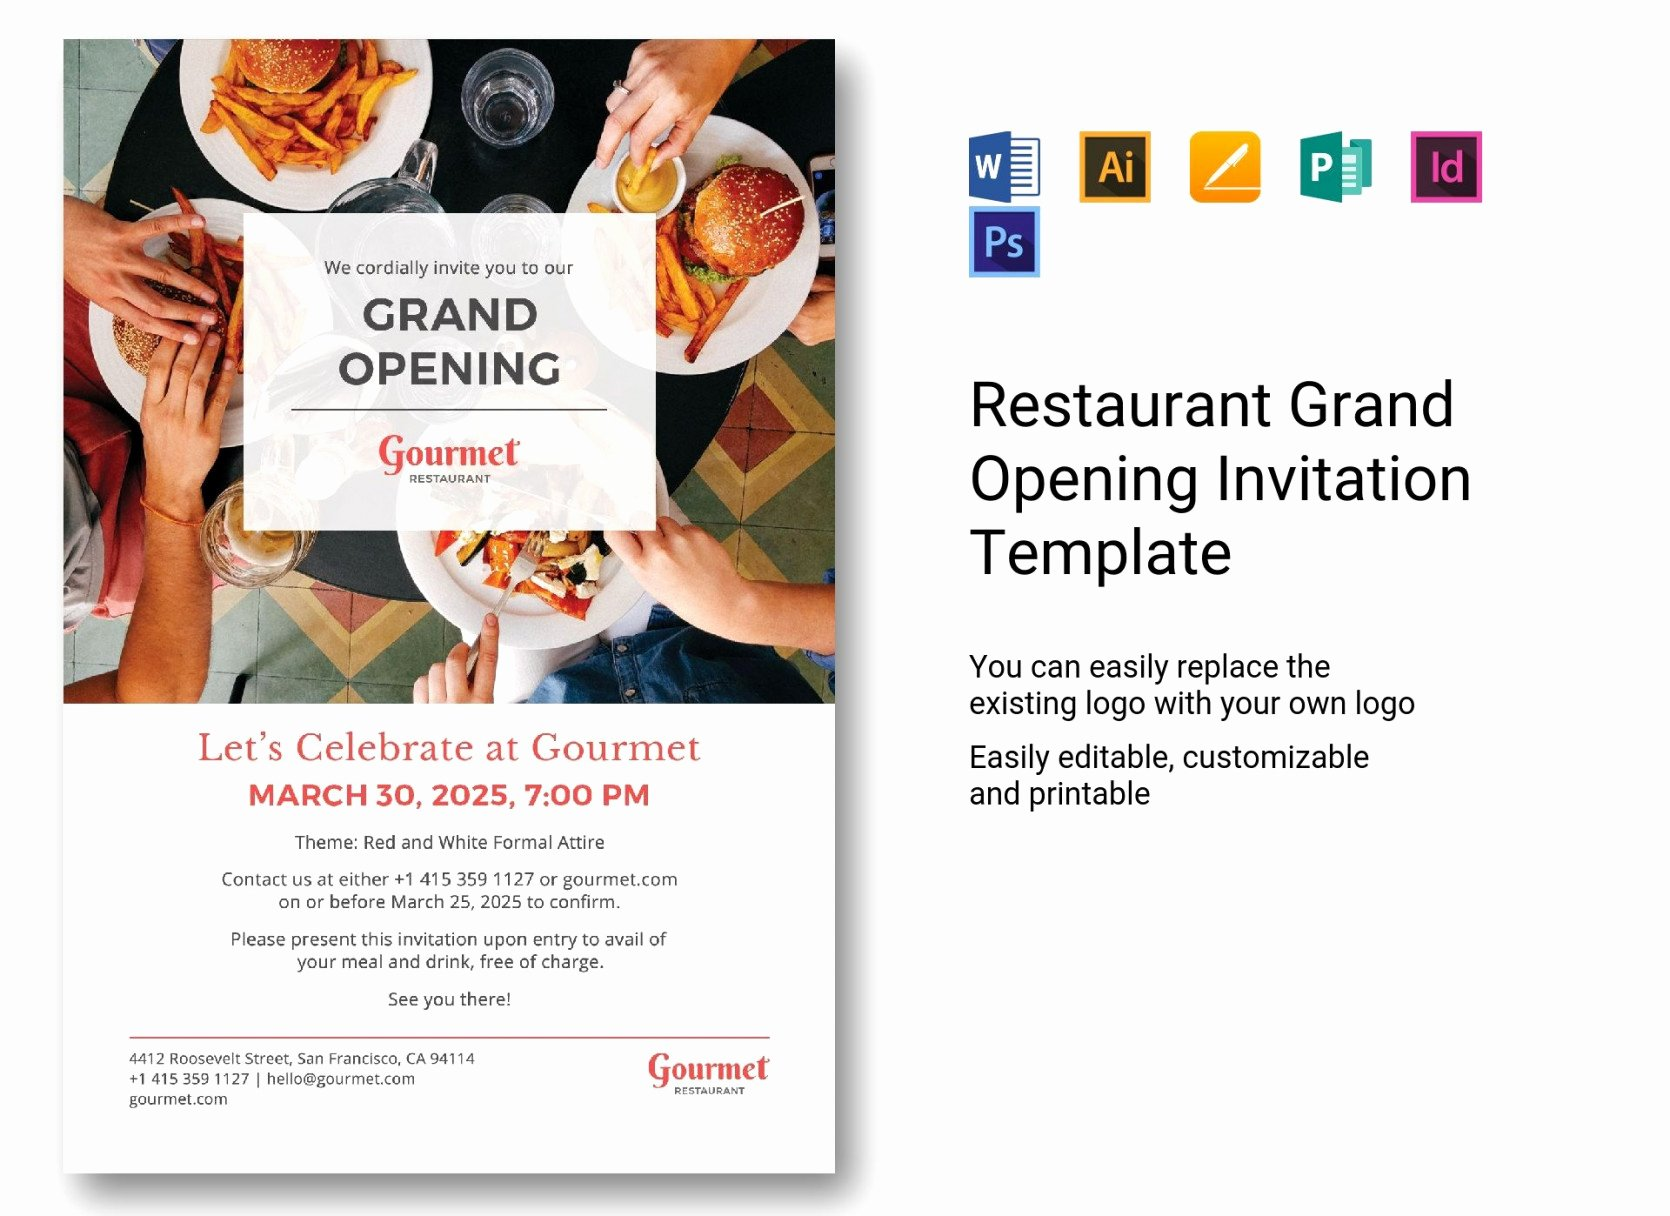 Restaurant Grand Opening Invitation Lovely Invitation Card